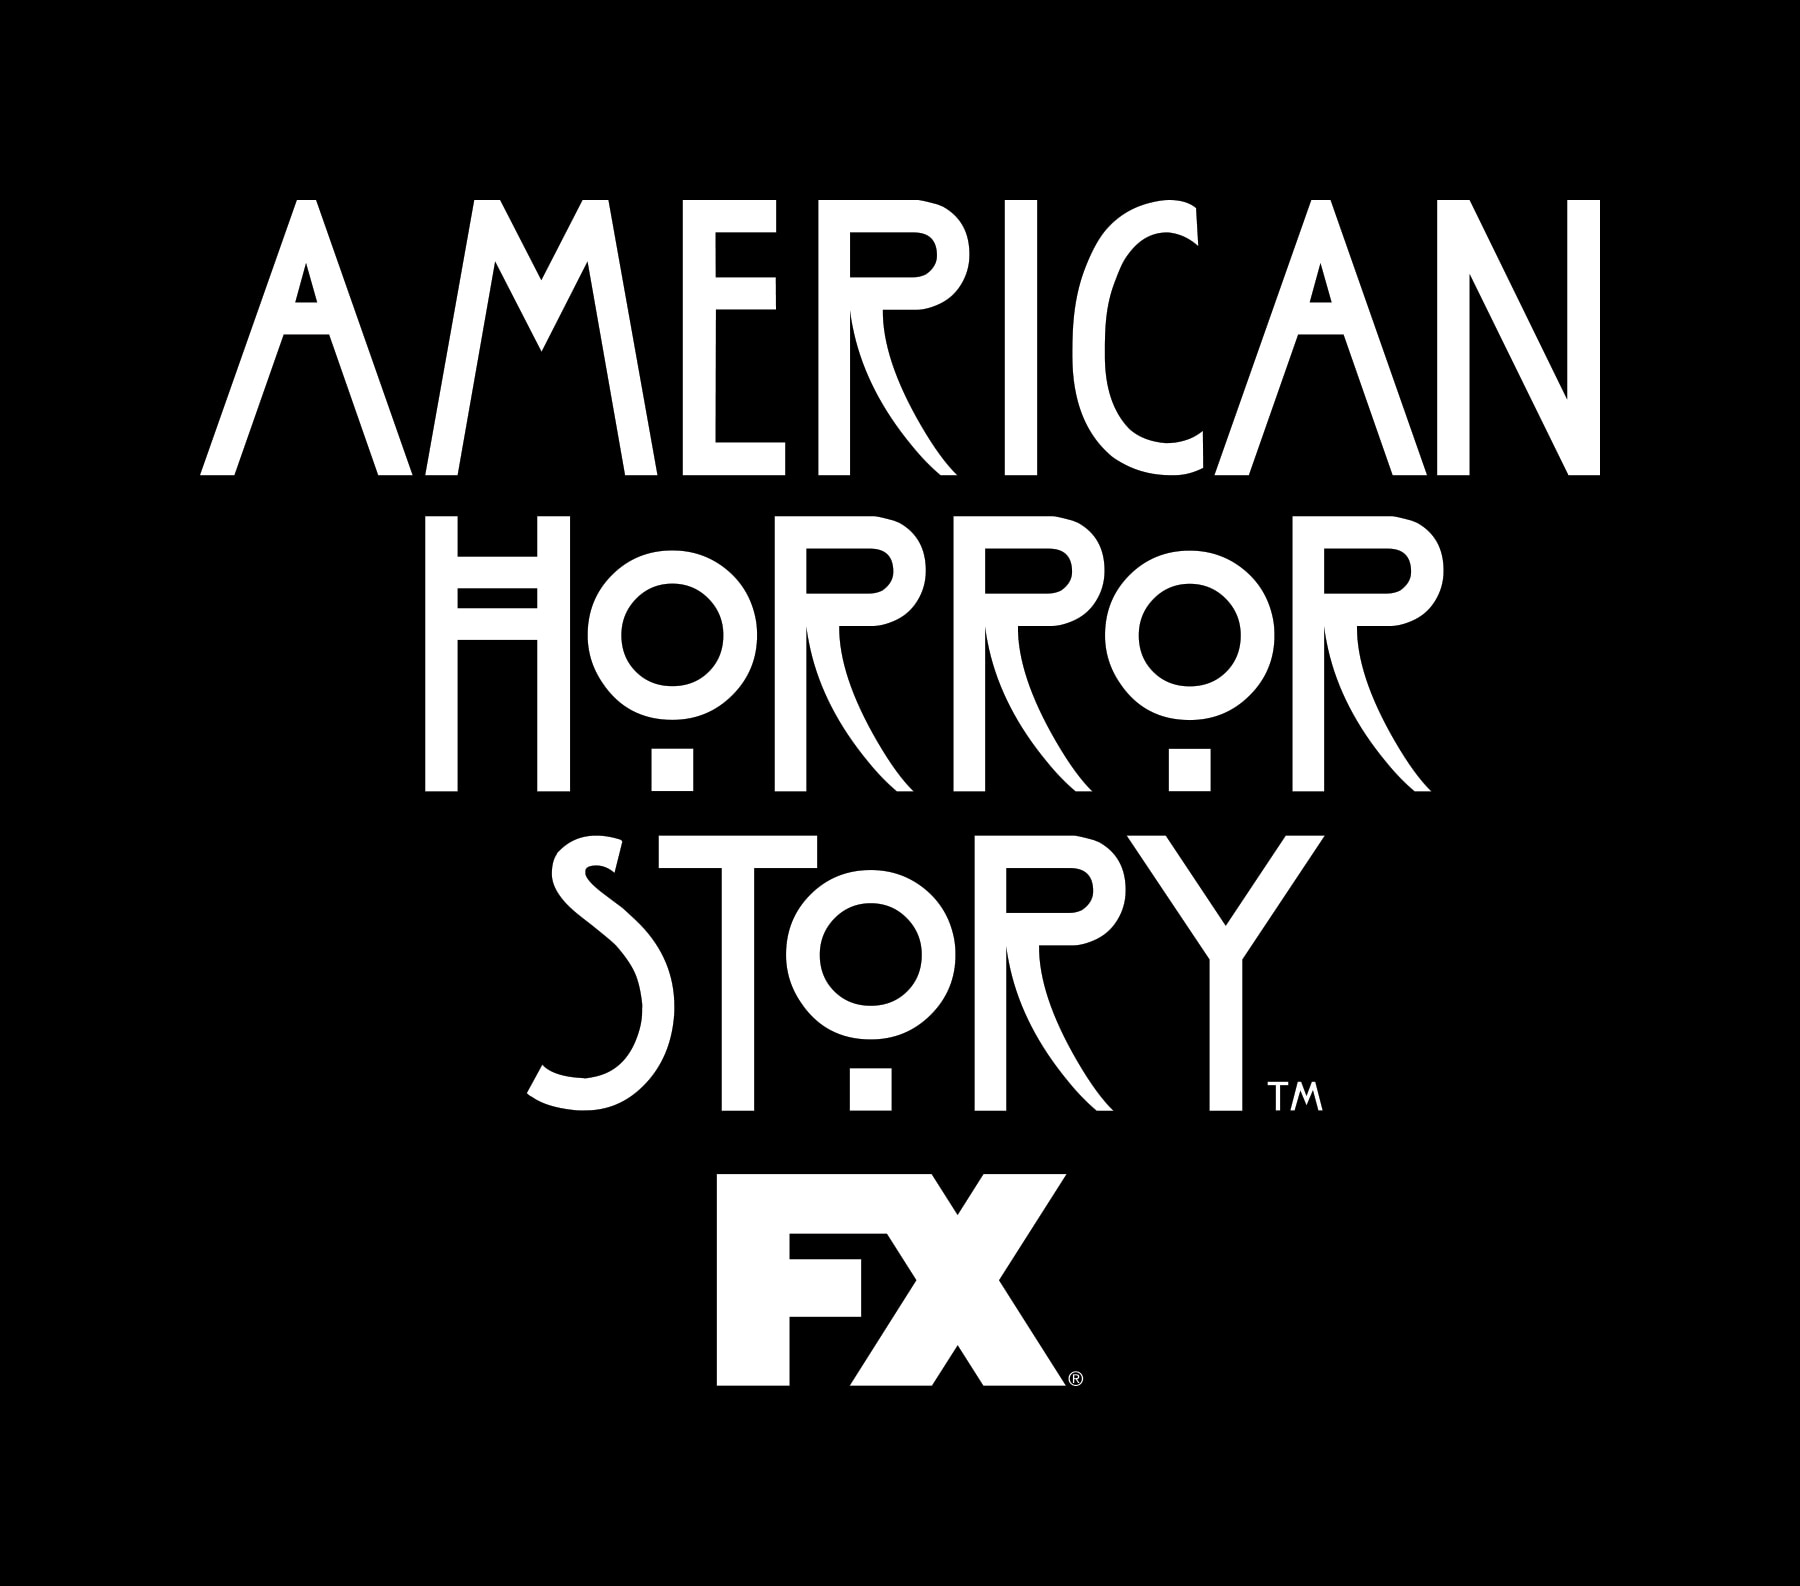 American Horror Story Returns to Universal Orlandos Halloween Horror Nights - American Horror Story Season 8 to Be Set in the Future; Update on Murder House/Coven Crossover